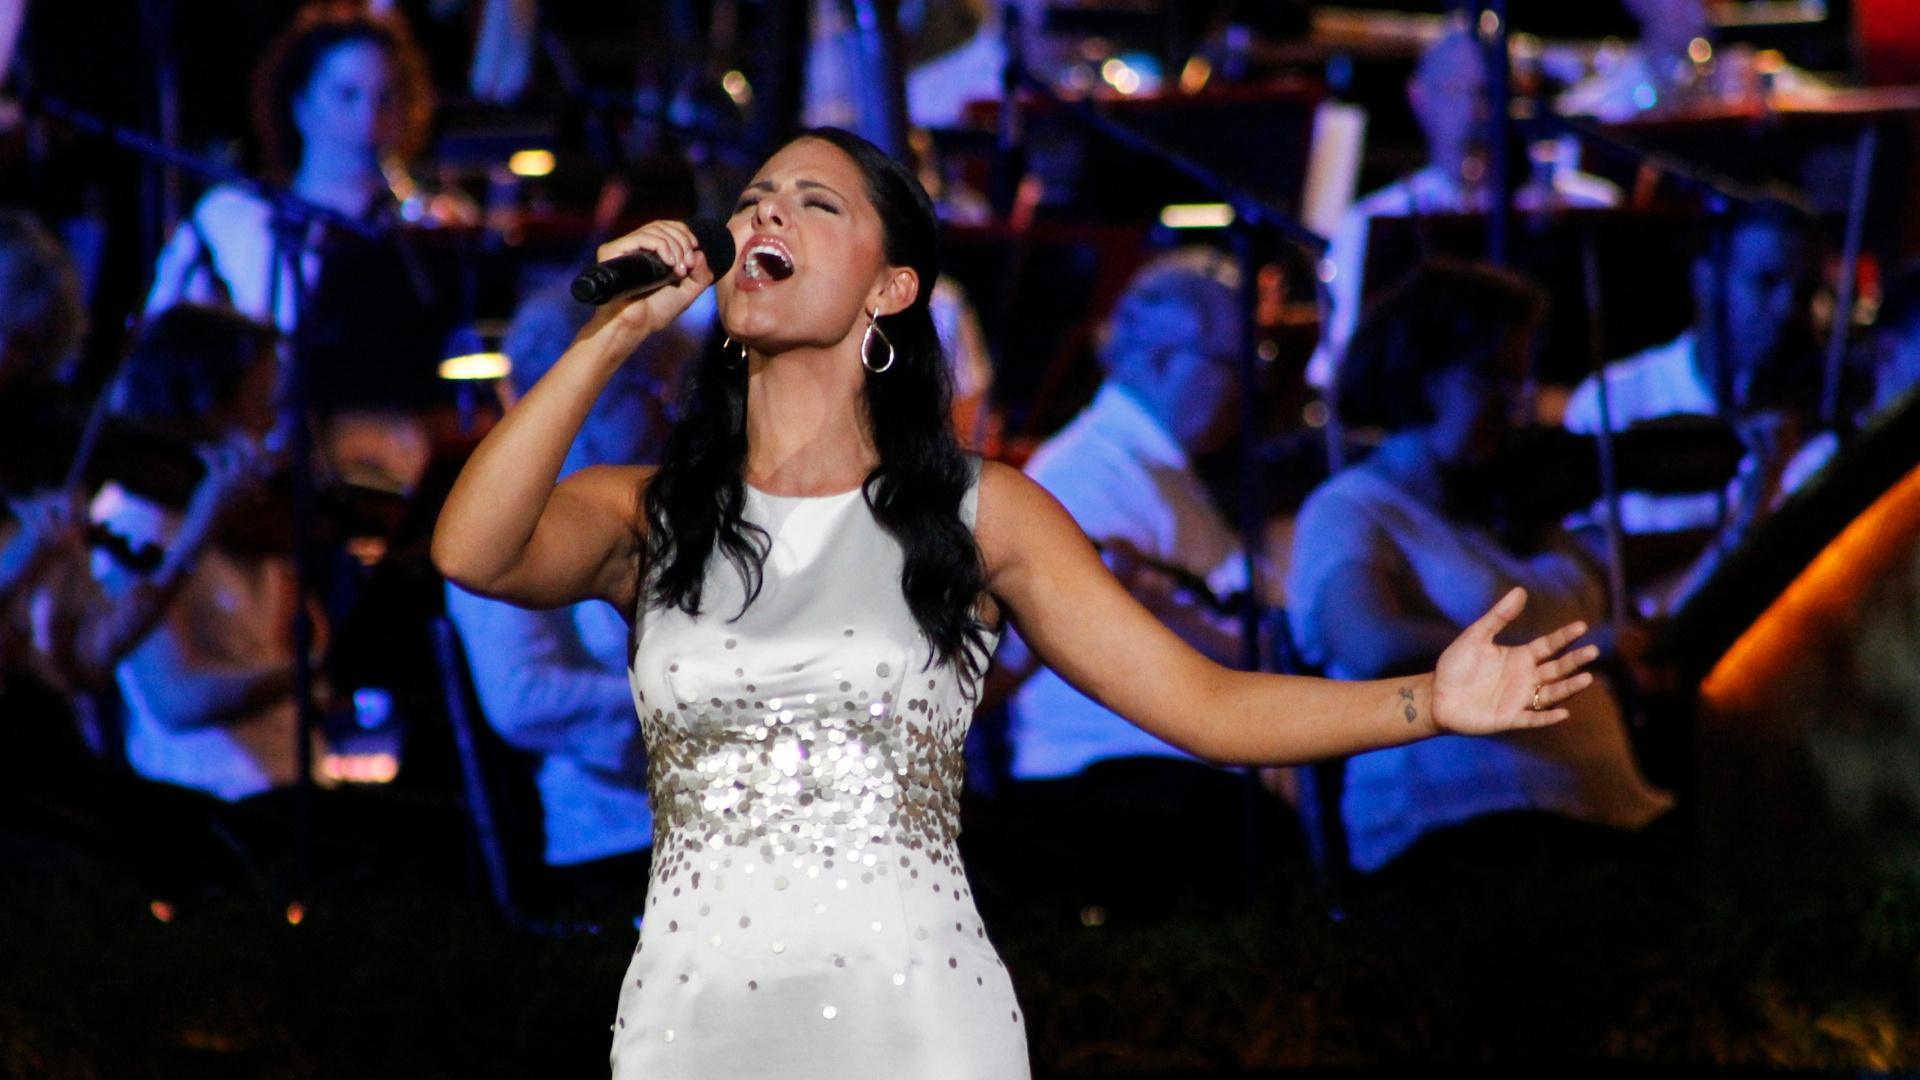 Pia Toscano Sings To Veterans